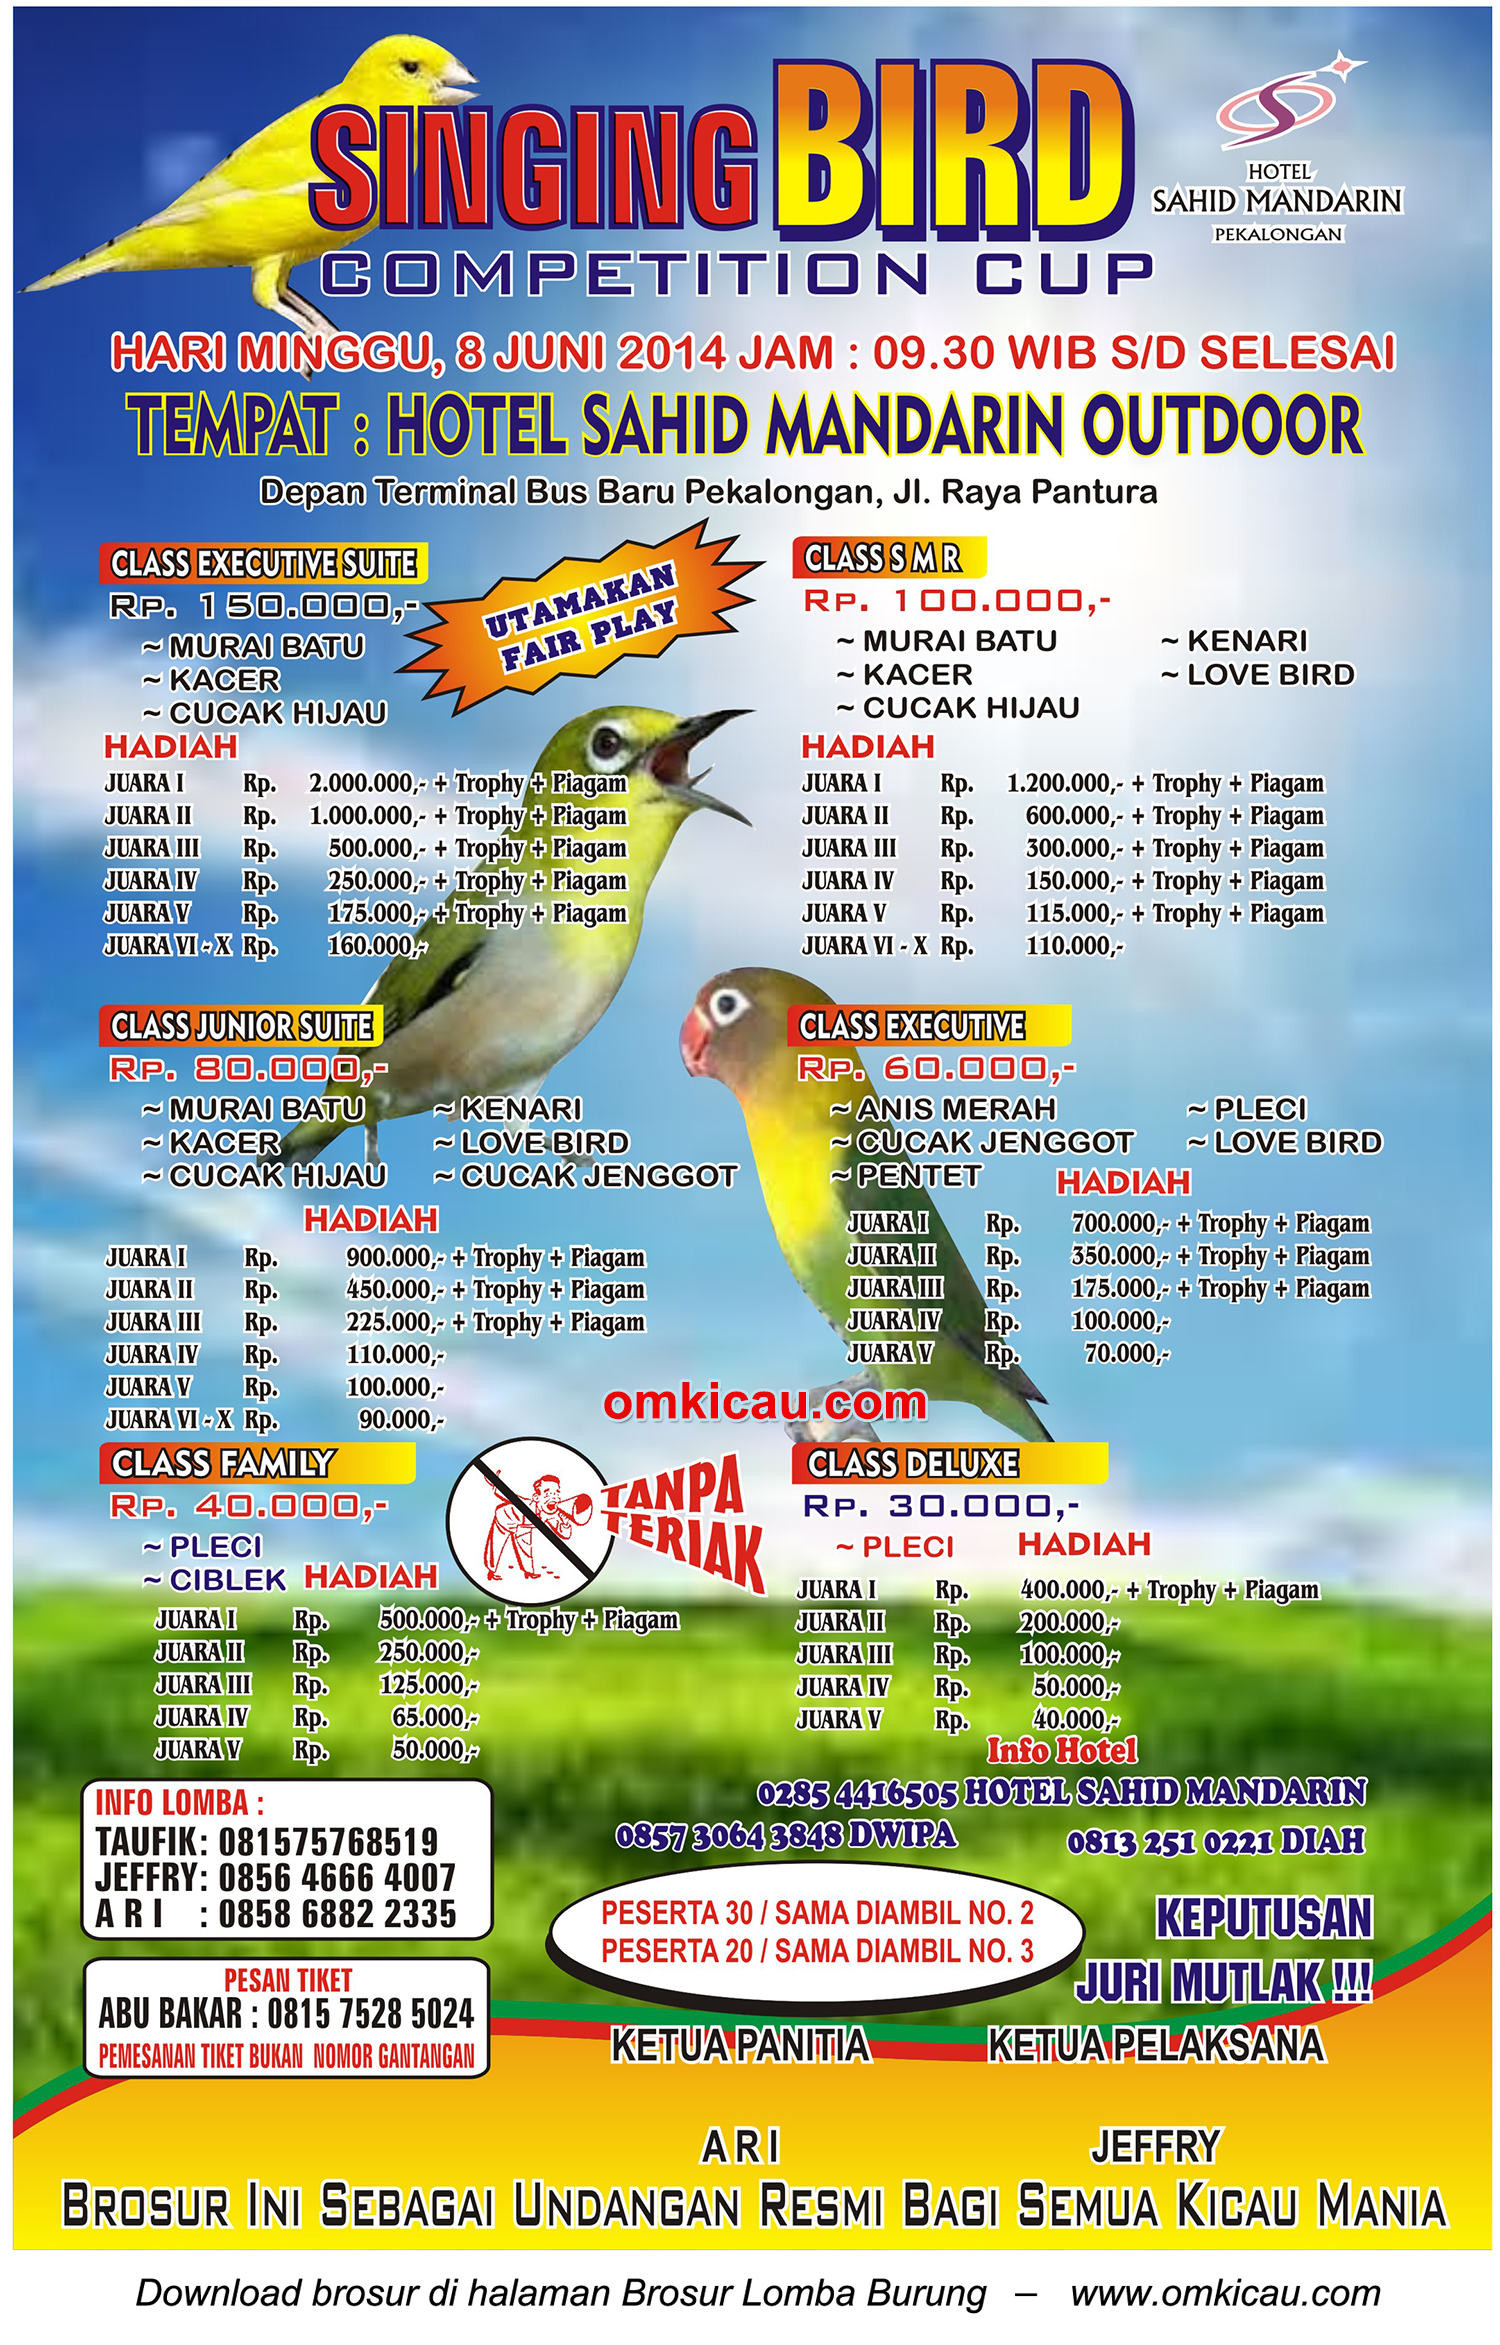 Brosur Singing Bird Competition Cup, Pekalongan, 8 Juni 2014